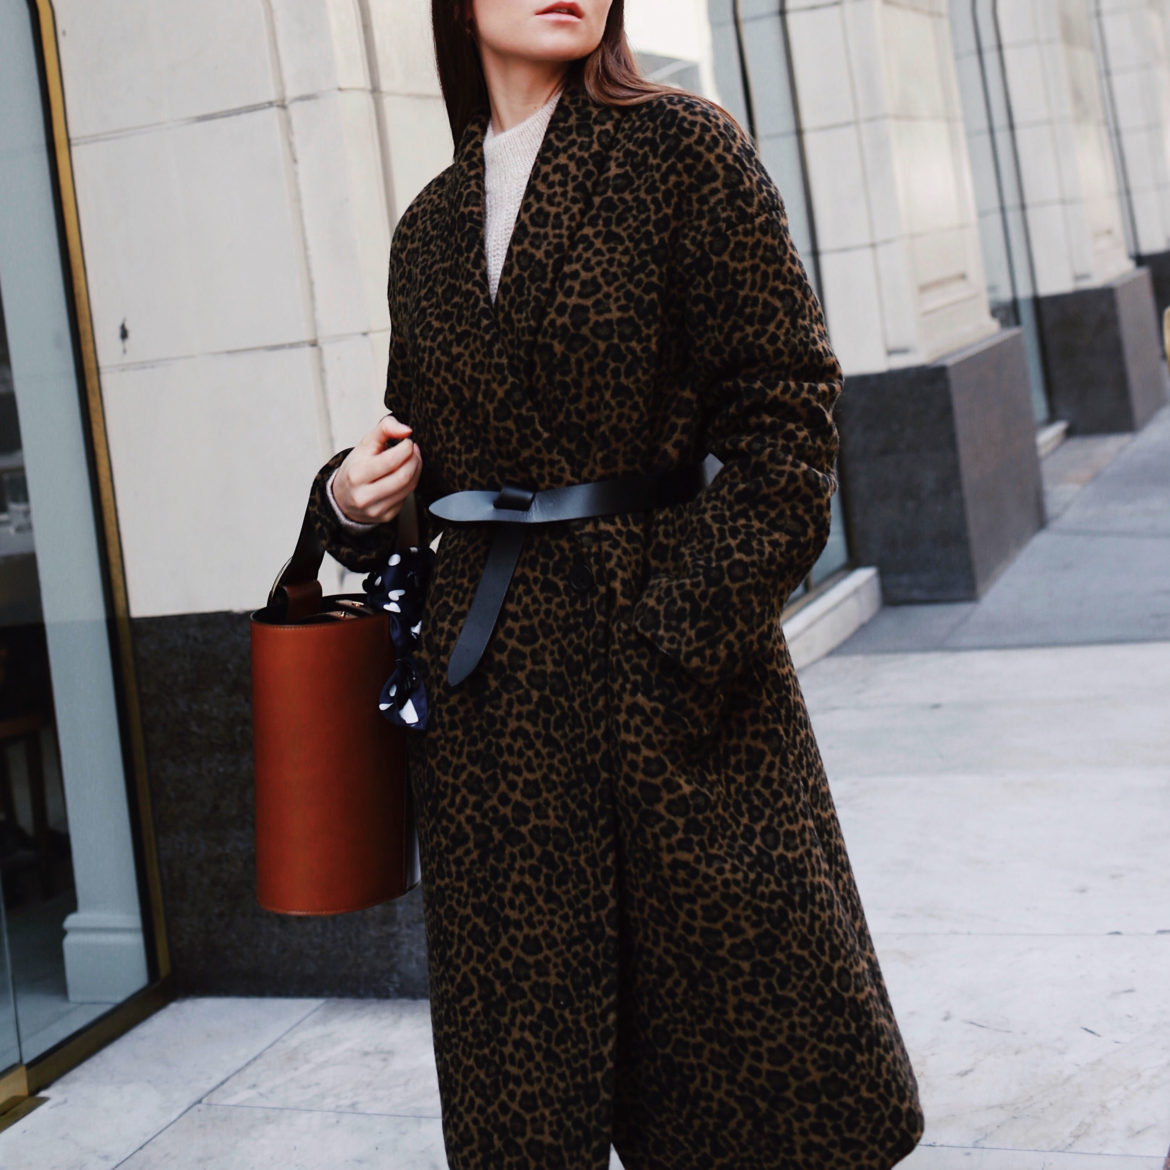 Fall Winter style: How to wear the animal print at work - Selection of my favorite leopard prints. Here wearing a Leopard Coat Tara Jarmon